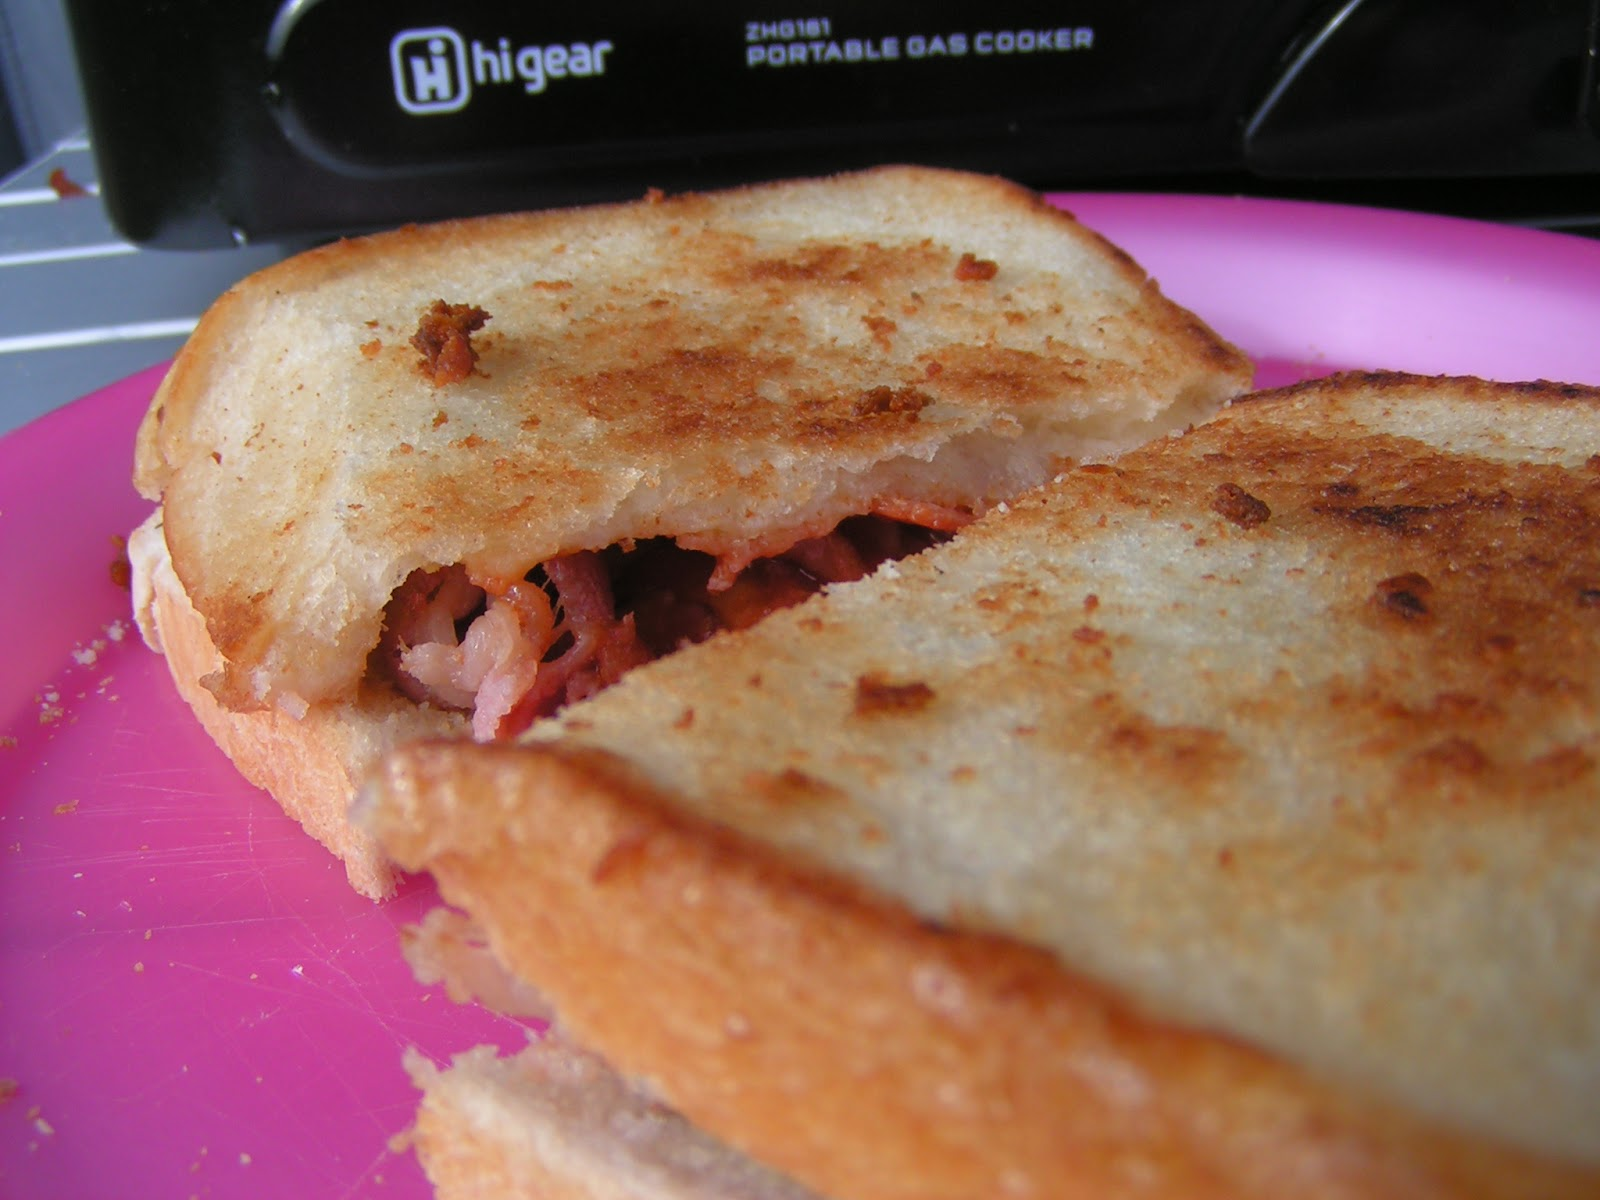 Fried Bacon Sandwich - or how to recover your camping mojo